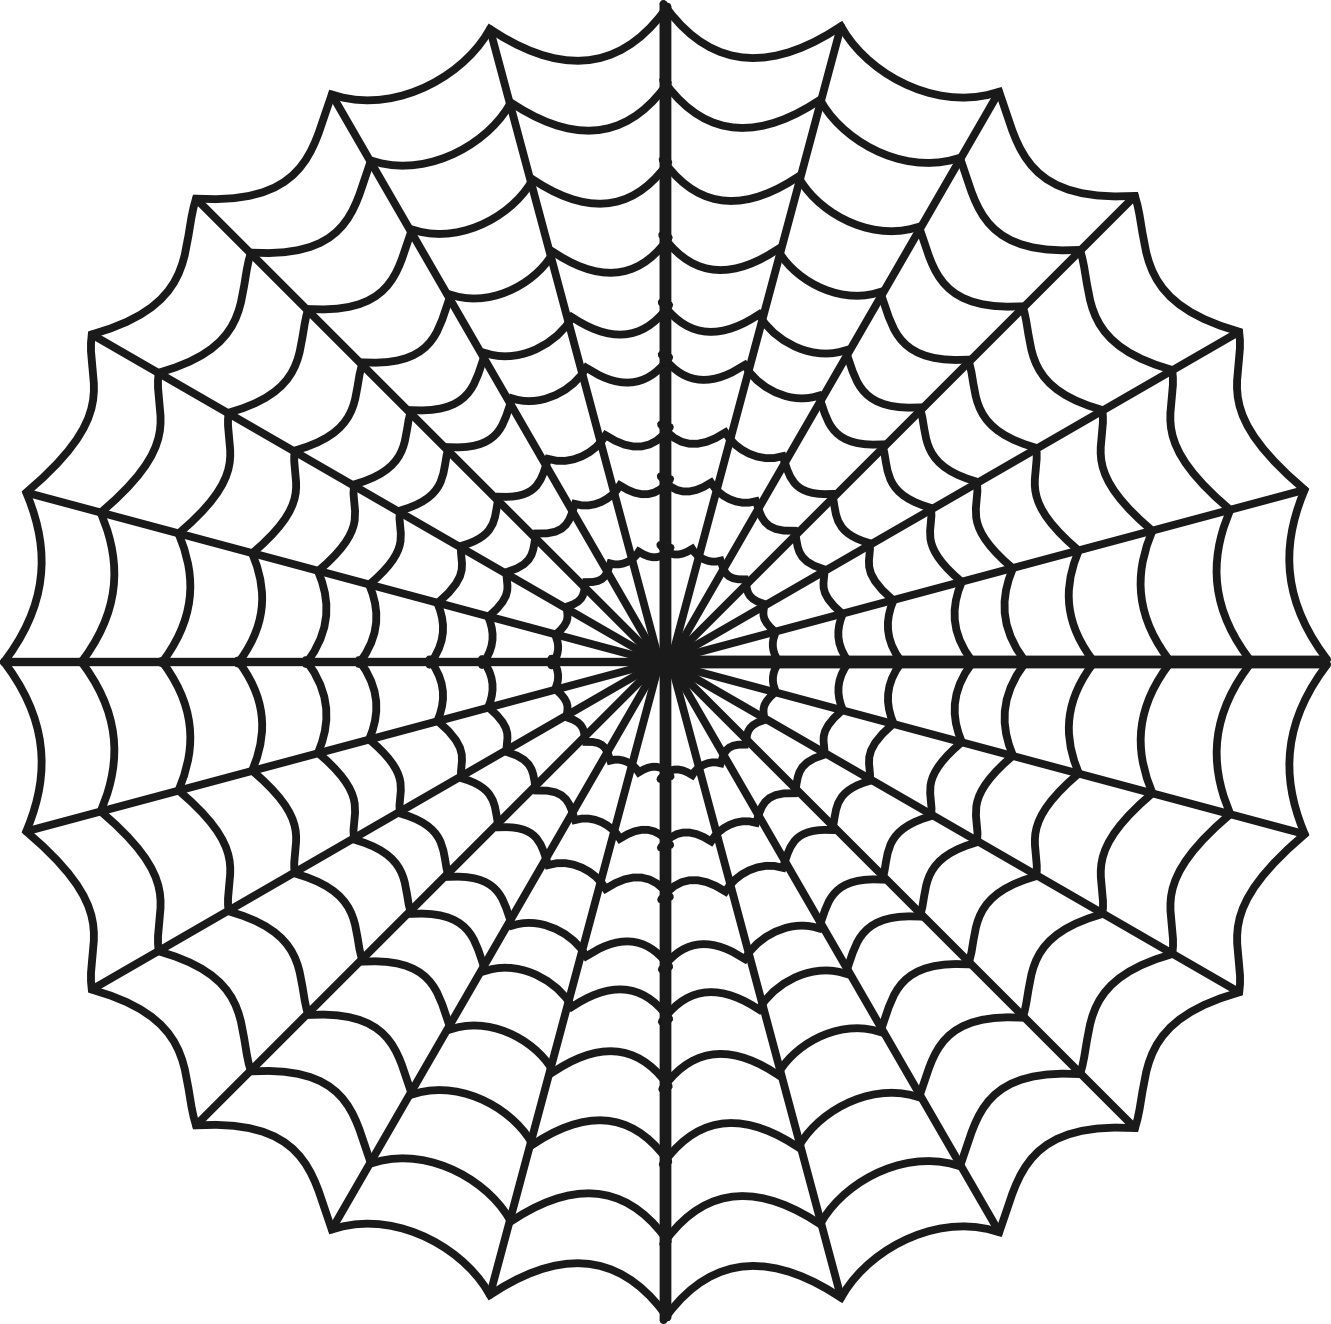 Free Printable Spider Web Coloring Pages For Kids Inside | Preschool - Free Printable Spider Web